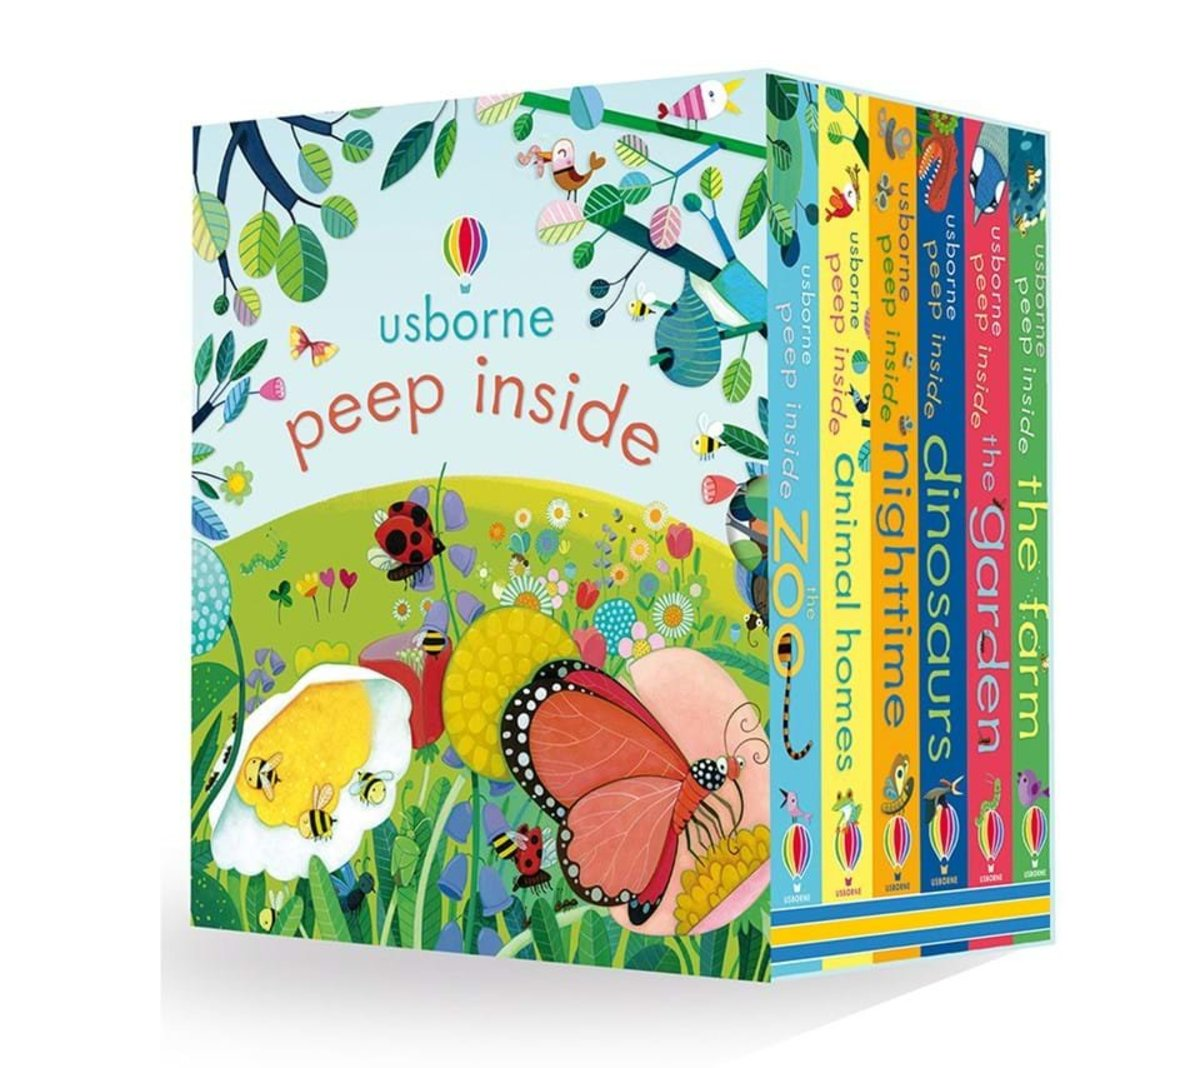 Usborne Peep Inside Collection - 6 Board Books Box Set